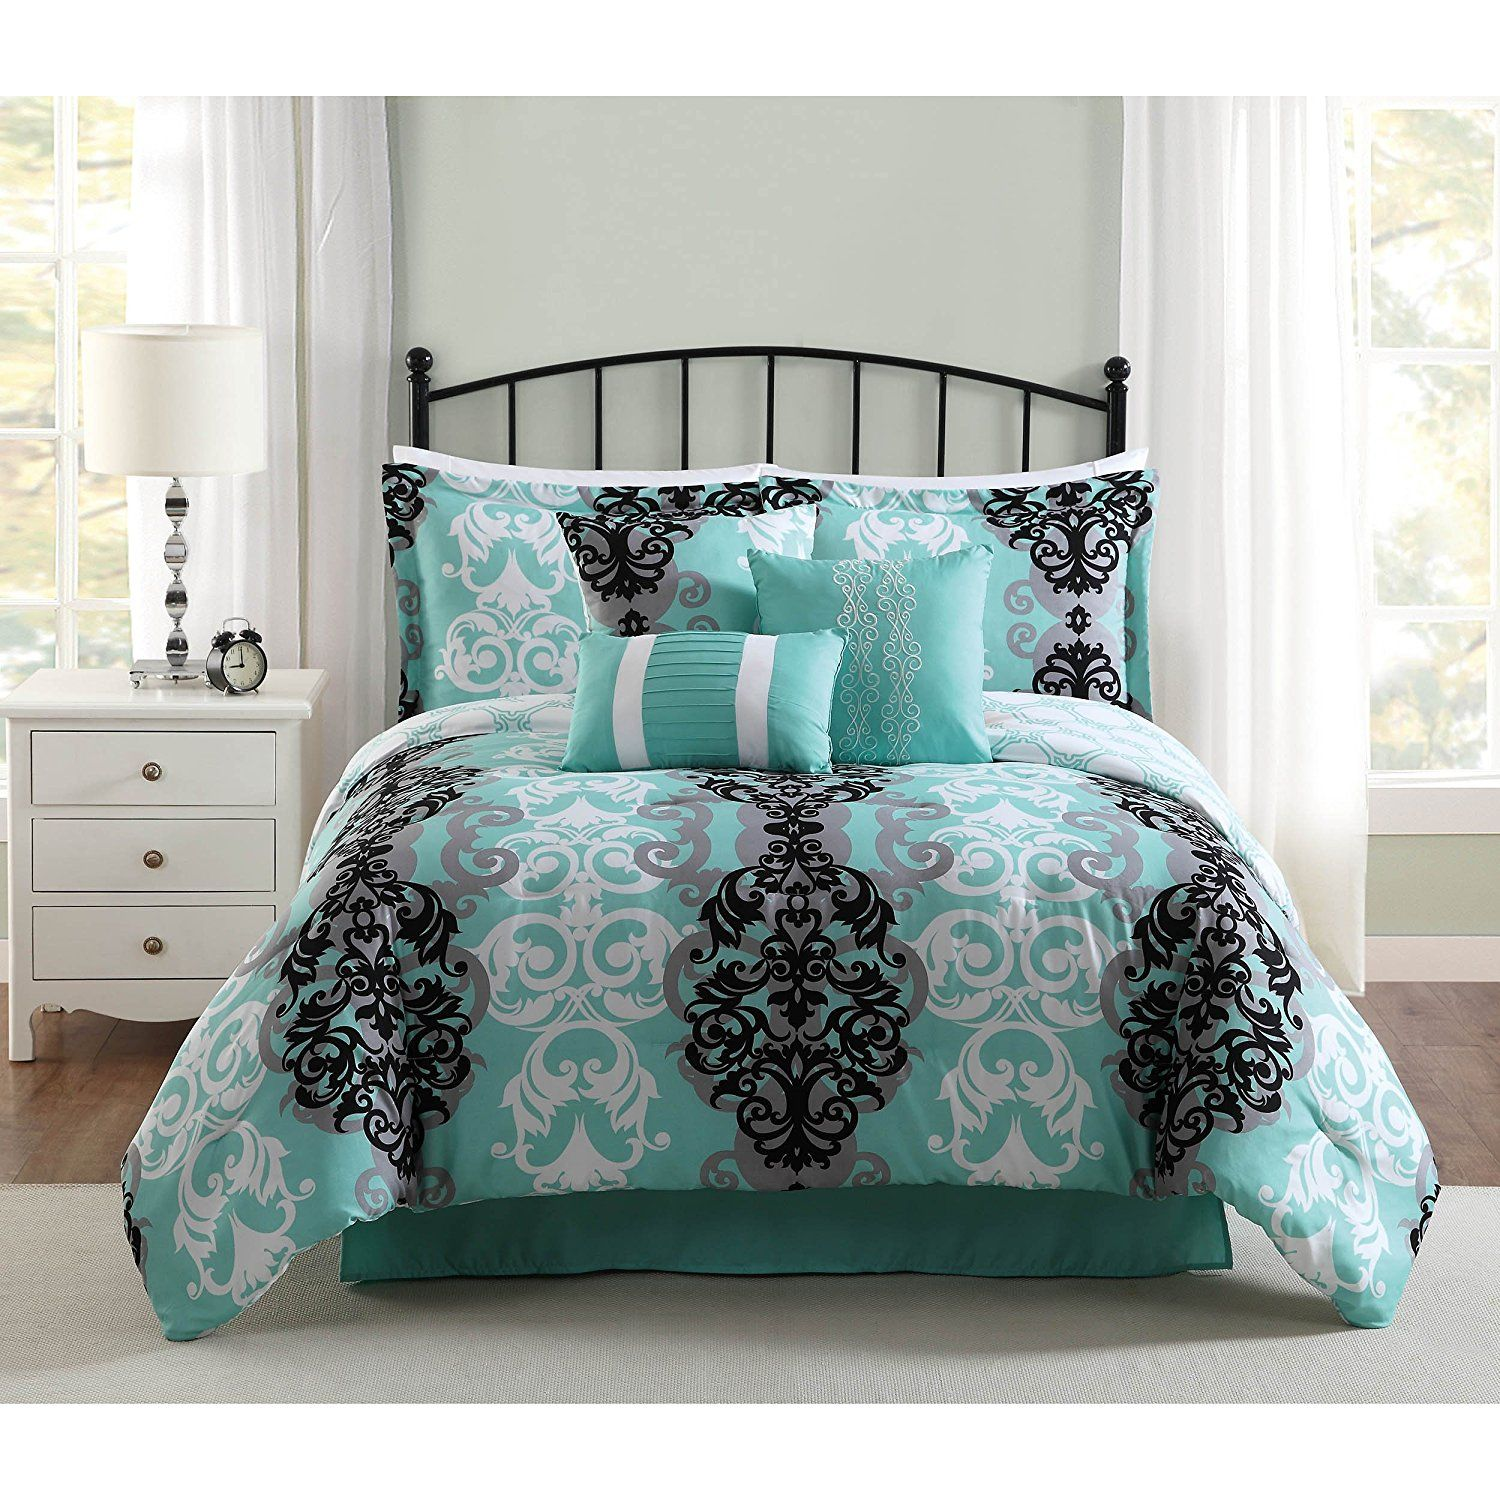 DelbouTree Charcoal Gray Turquoise Bedding Sets Sale